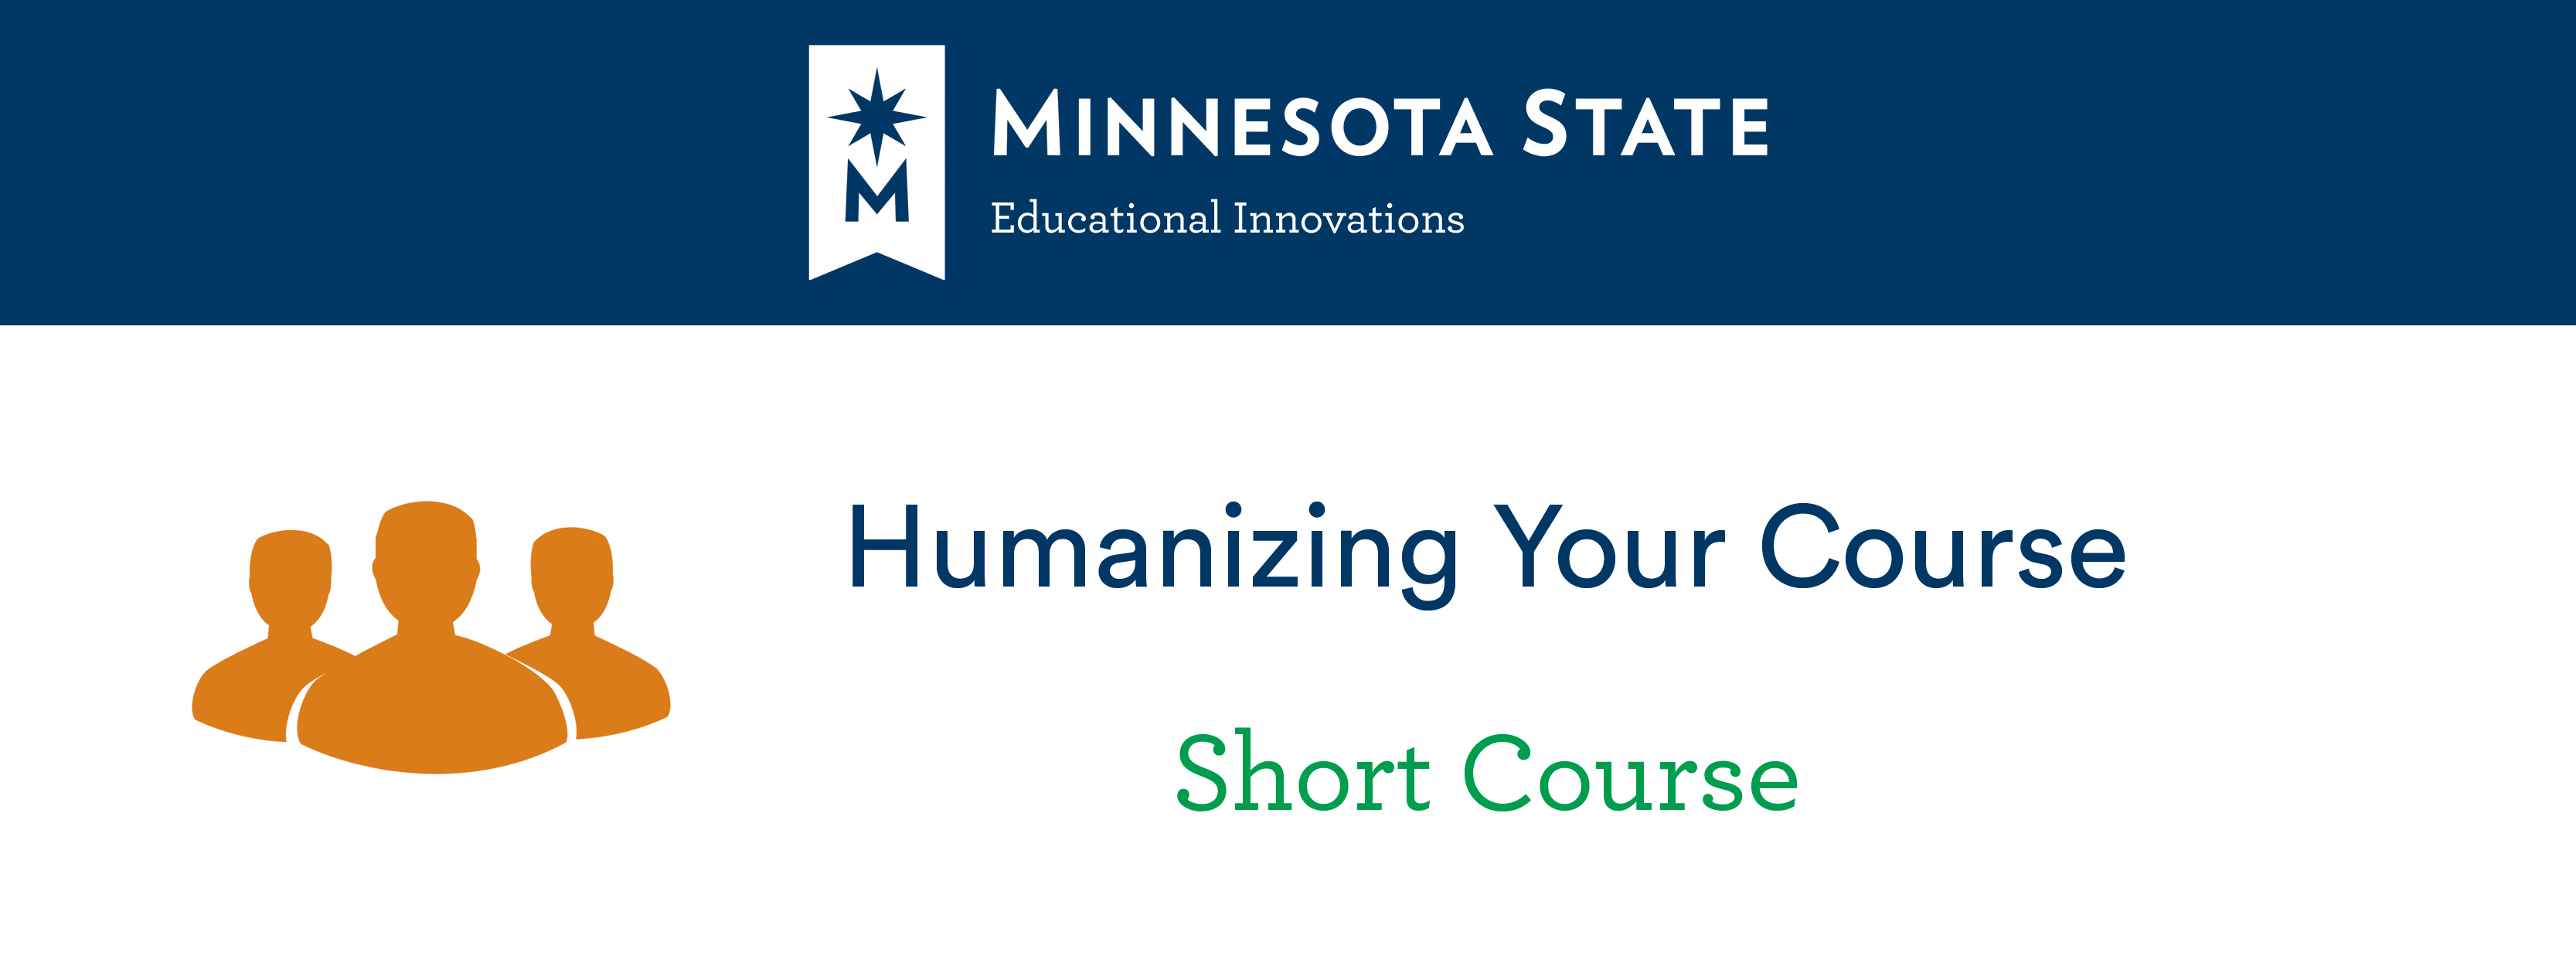 Humanizing Your Course